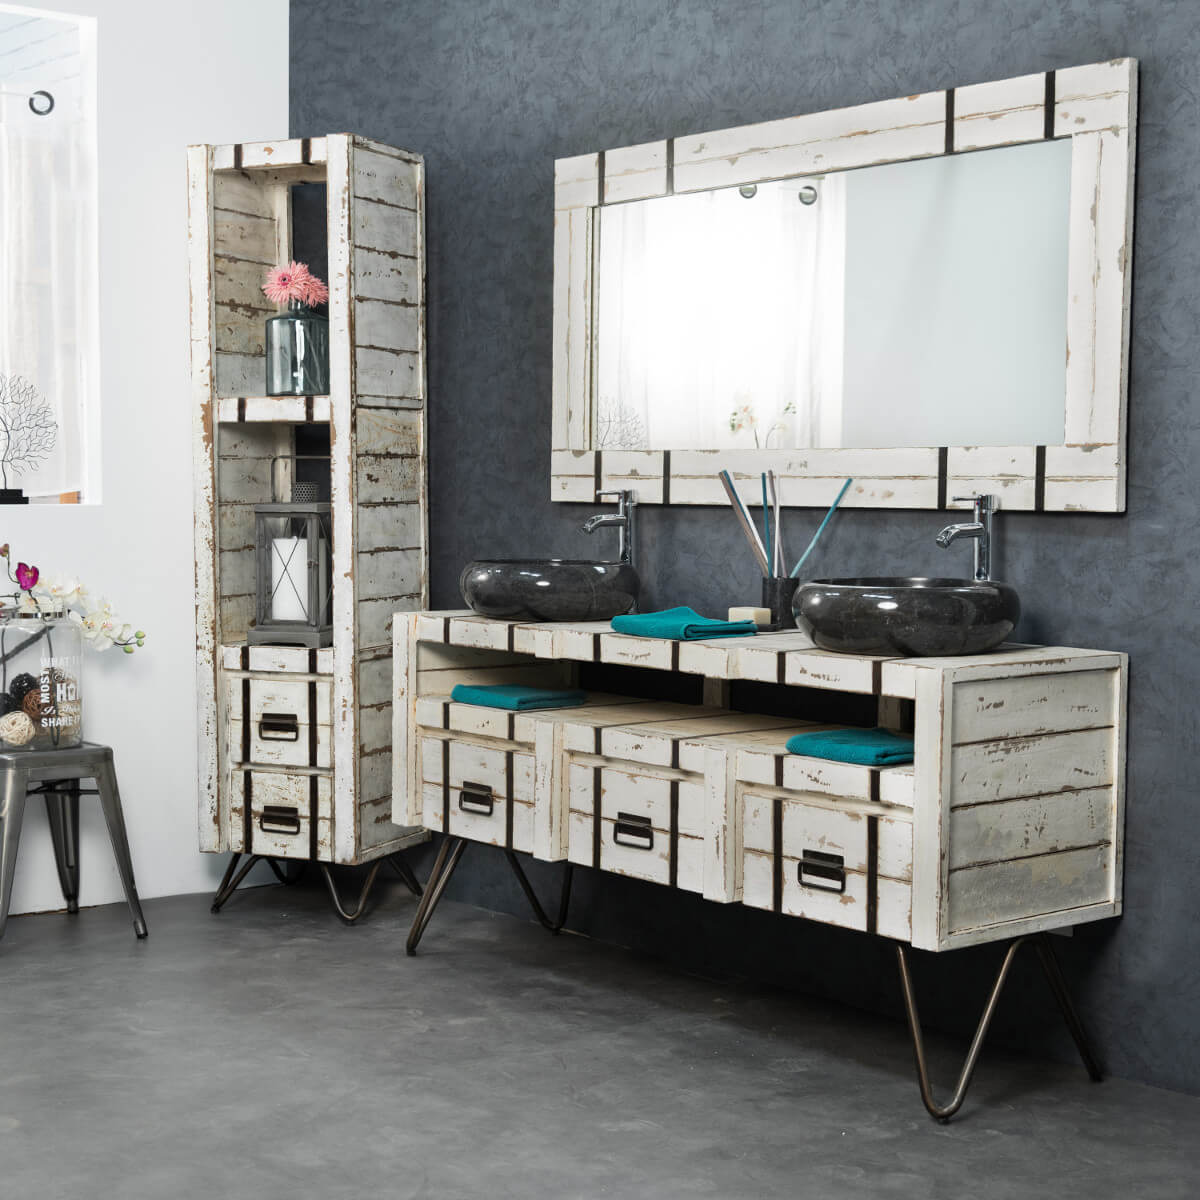 grand miroir de salle de bain loft 160x80 wanda collection. Black Bedroom Furniture Sets. Home Design Ideas